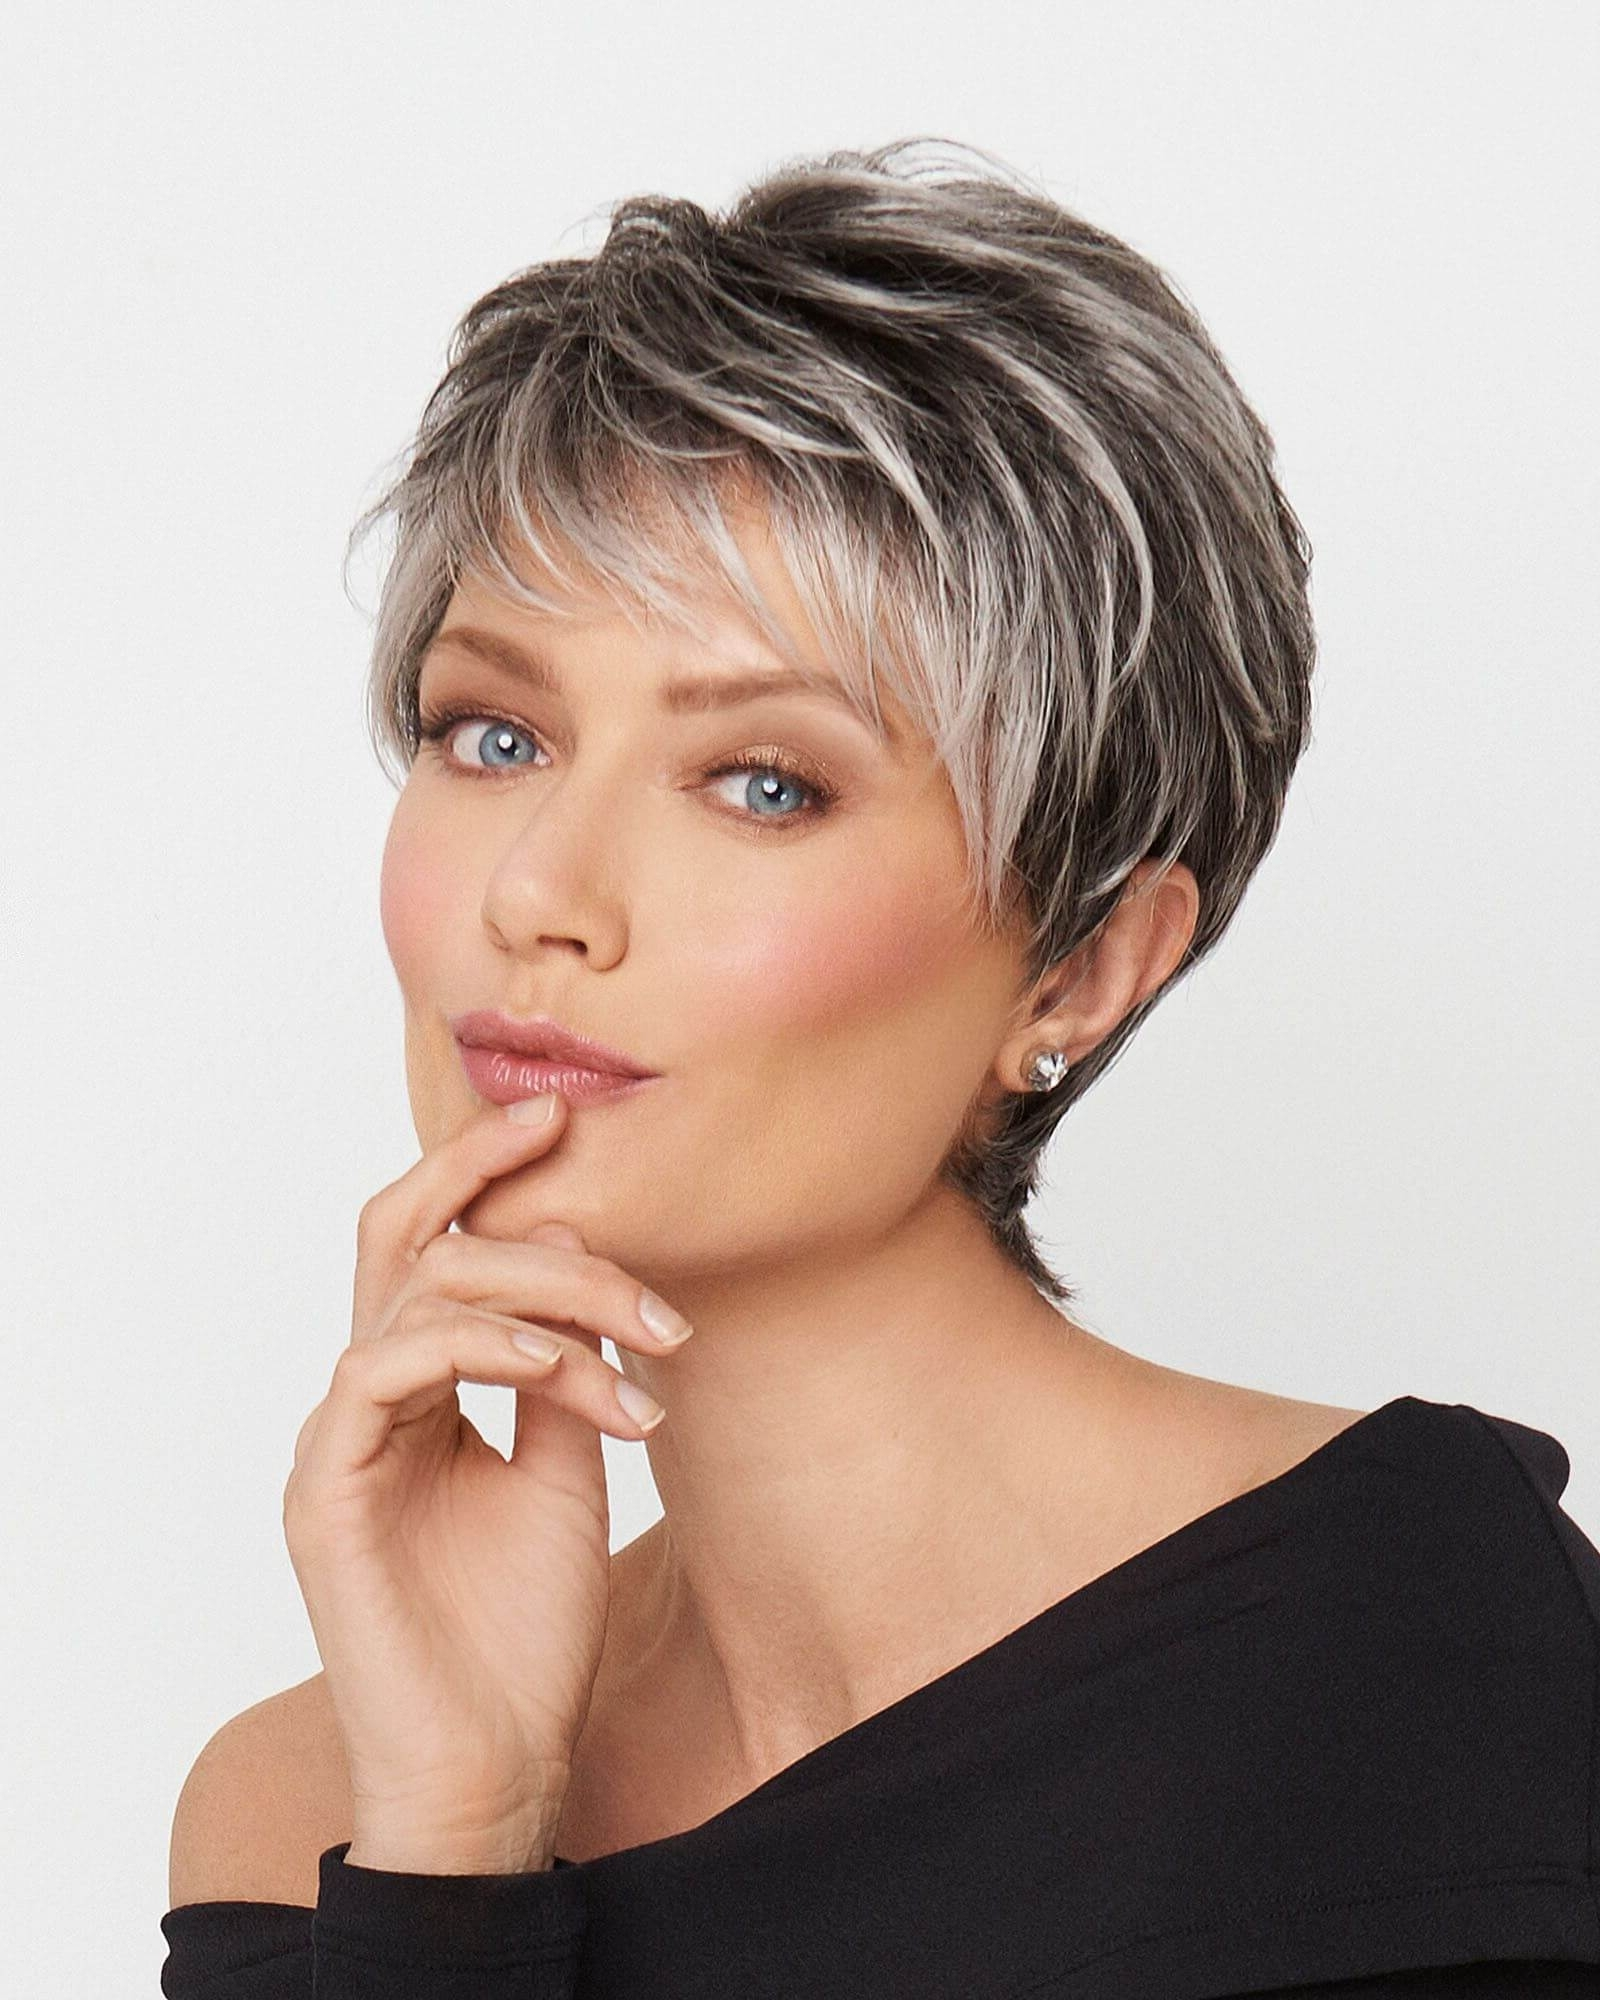 50 Pixie Haircuts You'll See Trending In 2018 For Well Known Paper White Pixie Cut Blonde Hairstyles (Gallery 13 of 20)